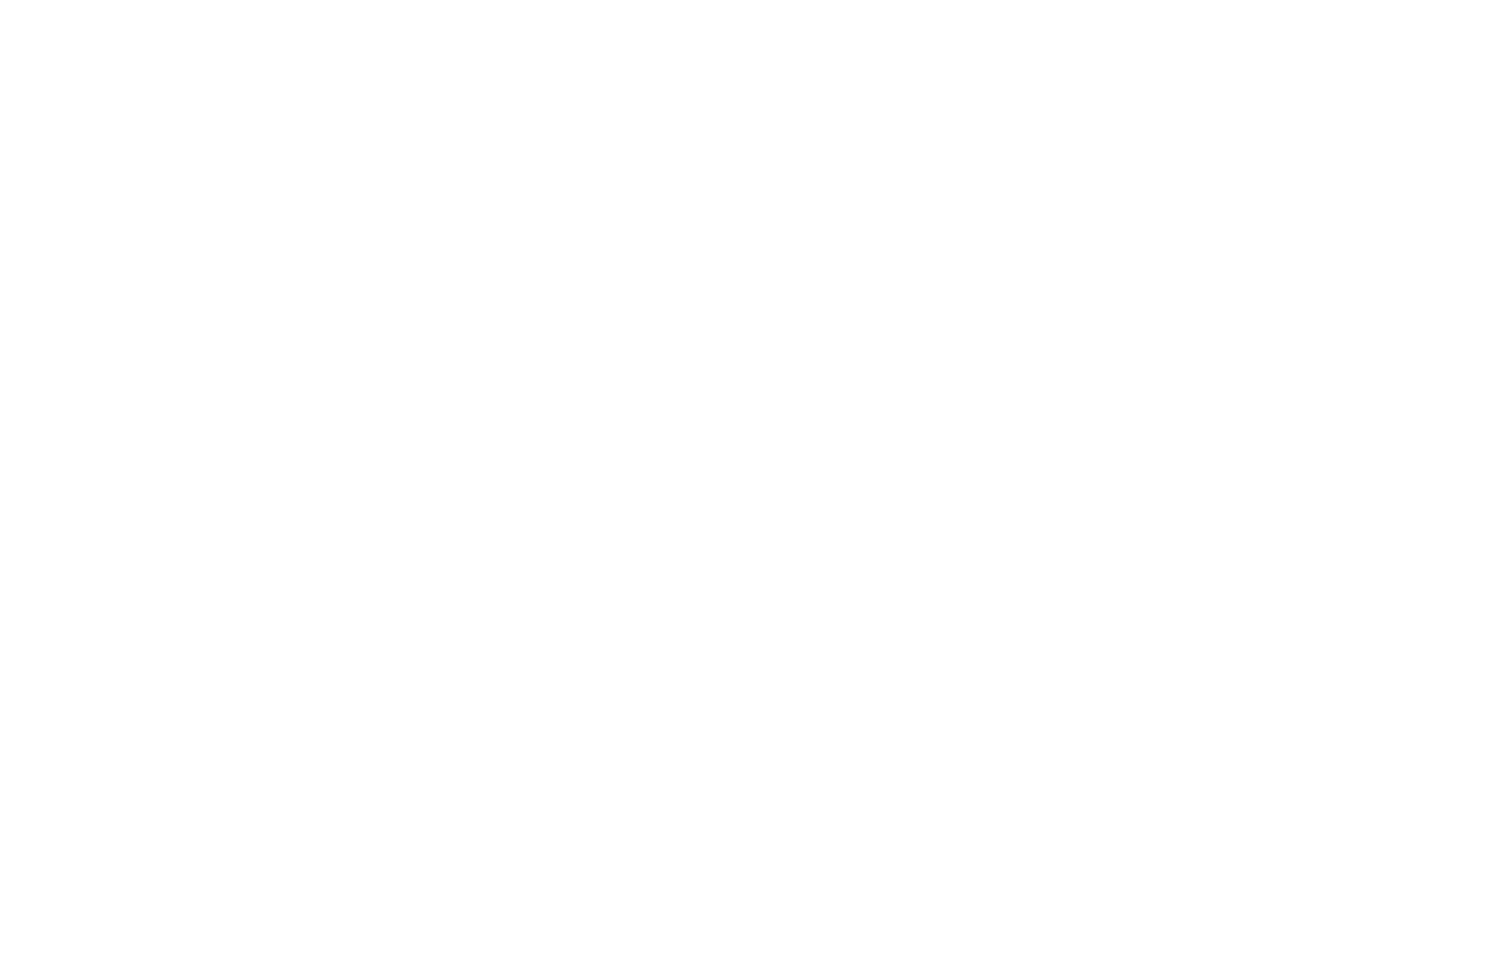 Immune Coding Institute